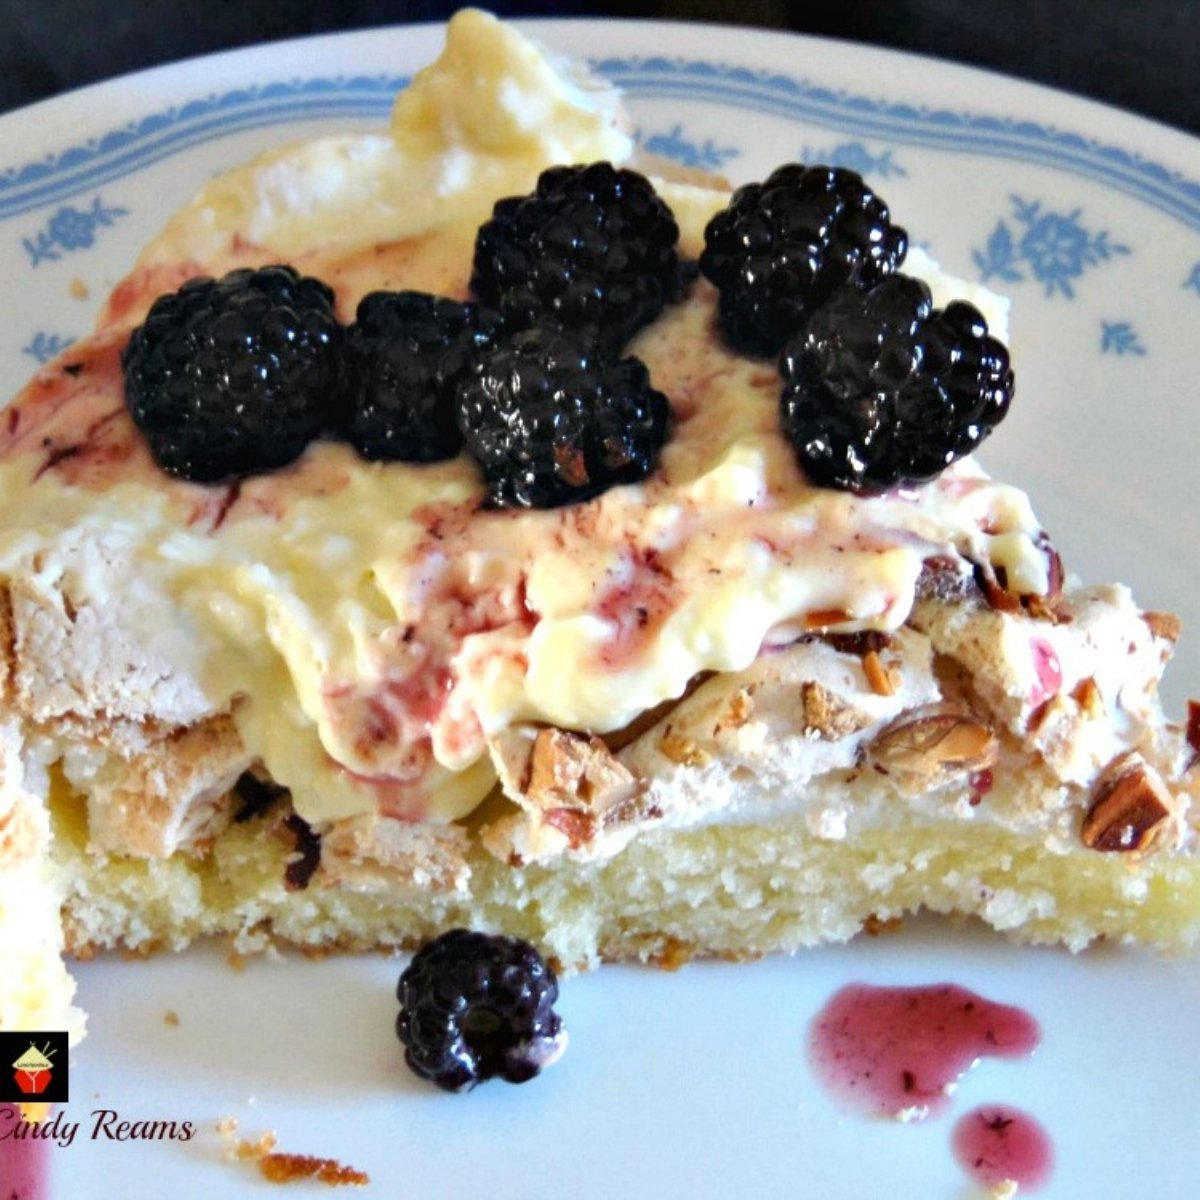 Rock Star Dessert! A delicious dessert made up of yellow cake and meringue and topped with whipped cream, delicious lemon curd and berries. It's a crowd pleaser!